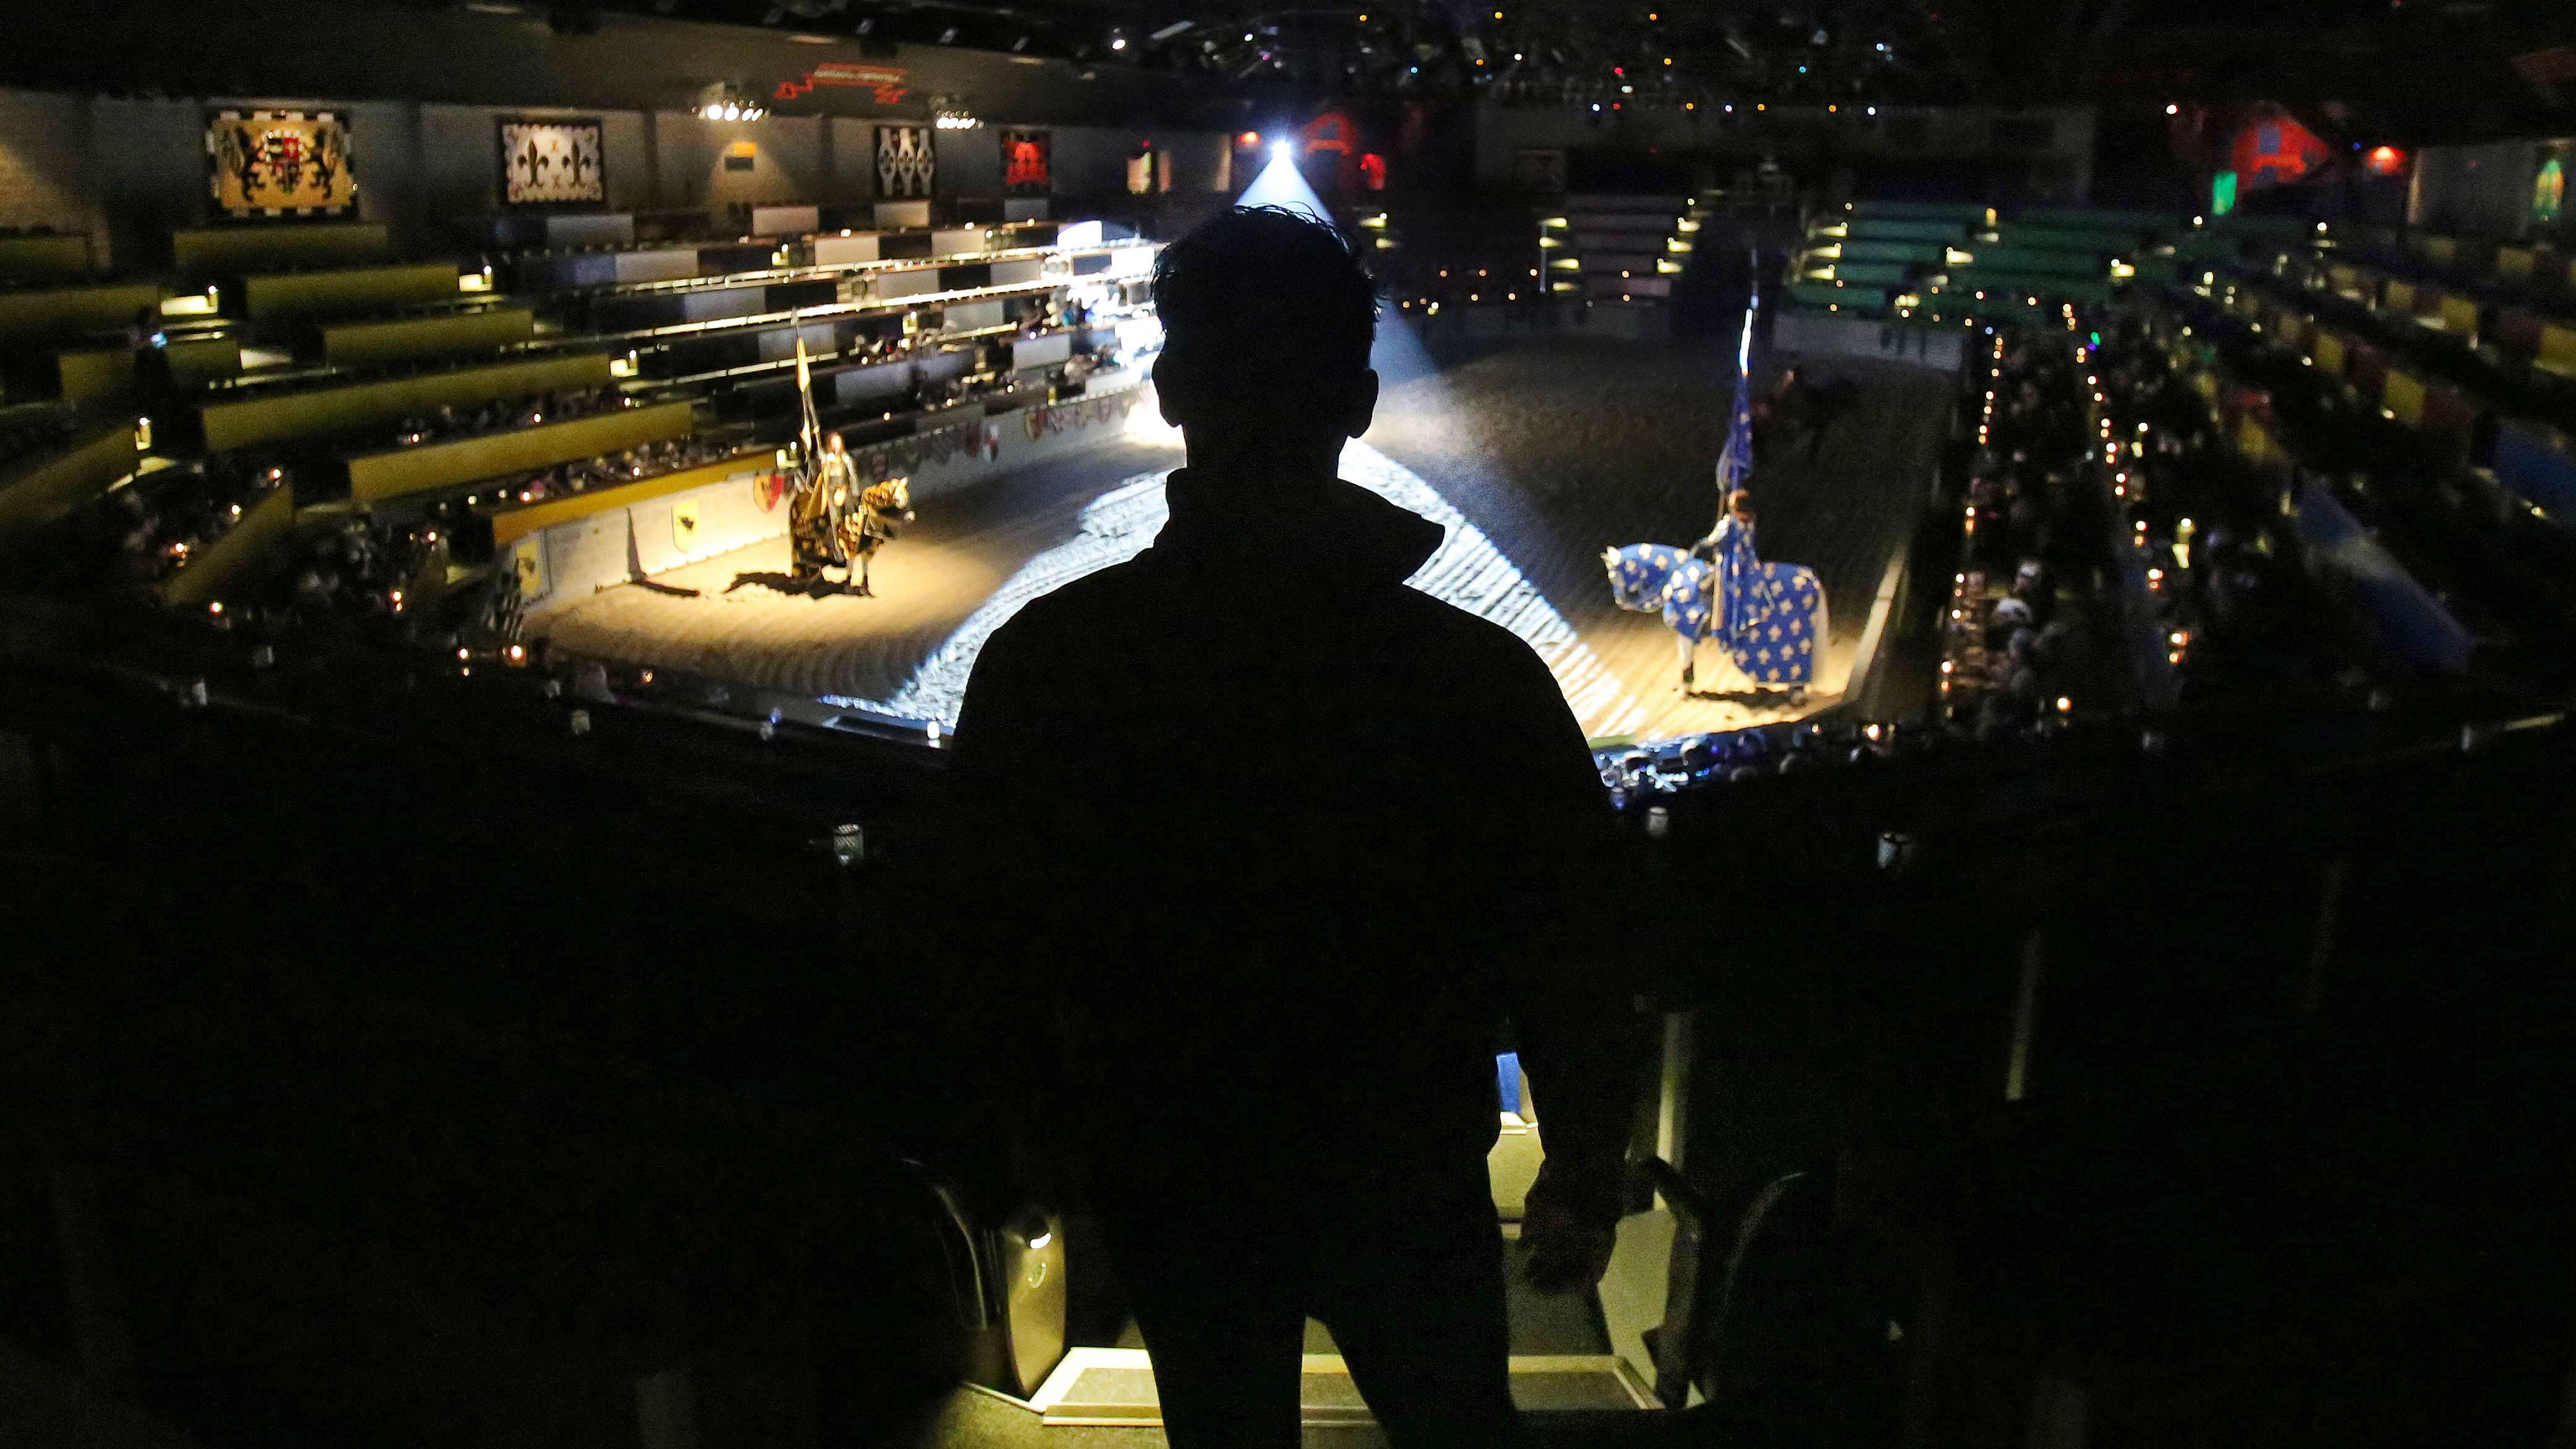 While doing a story on Medieval Times horse trainer Mario Contreras, I made this picture of him looking over one of the shows. I like the way the spotlight frames his body as he watches from the stands. This photo was originally published in the Perspective column in the print edition of the Daily Herald.